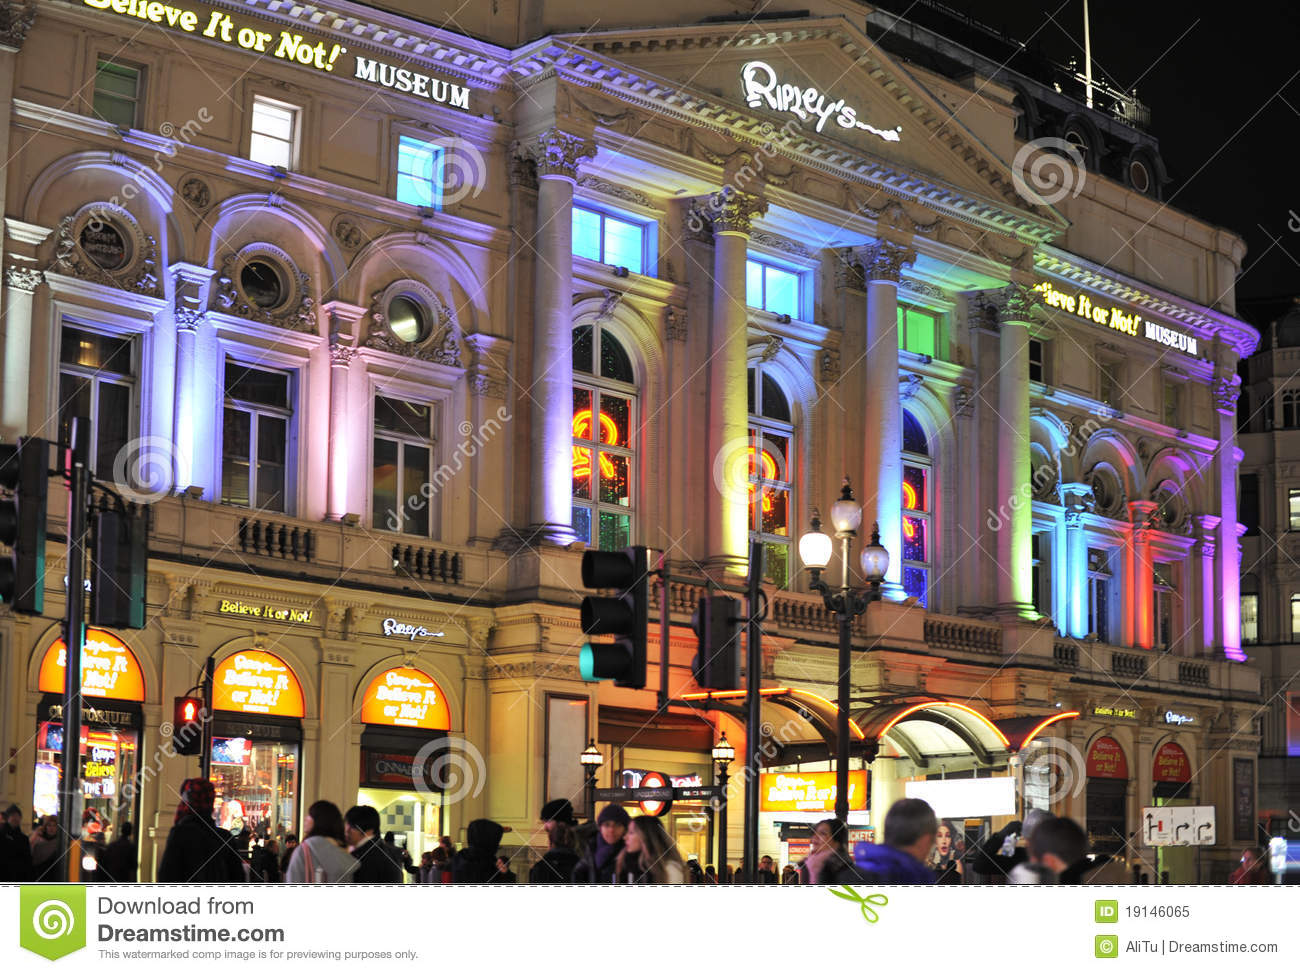 Ripley's Believe It or Not is at Piccadilly in the centre of London. The attraction houses more than unusual artefacts from around the world inspired by the travels and .